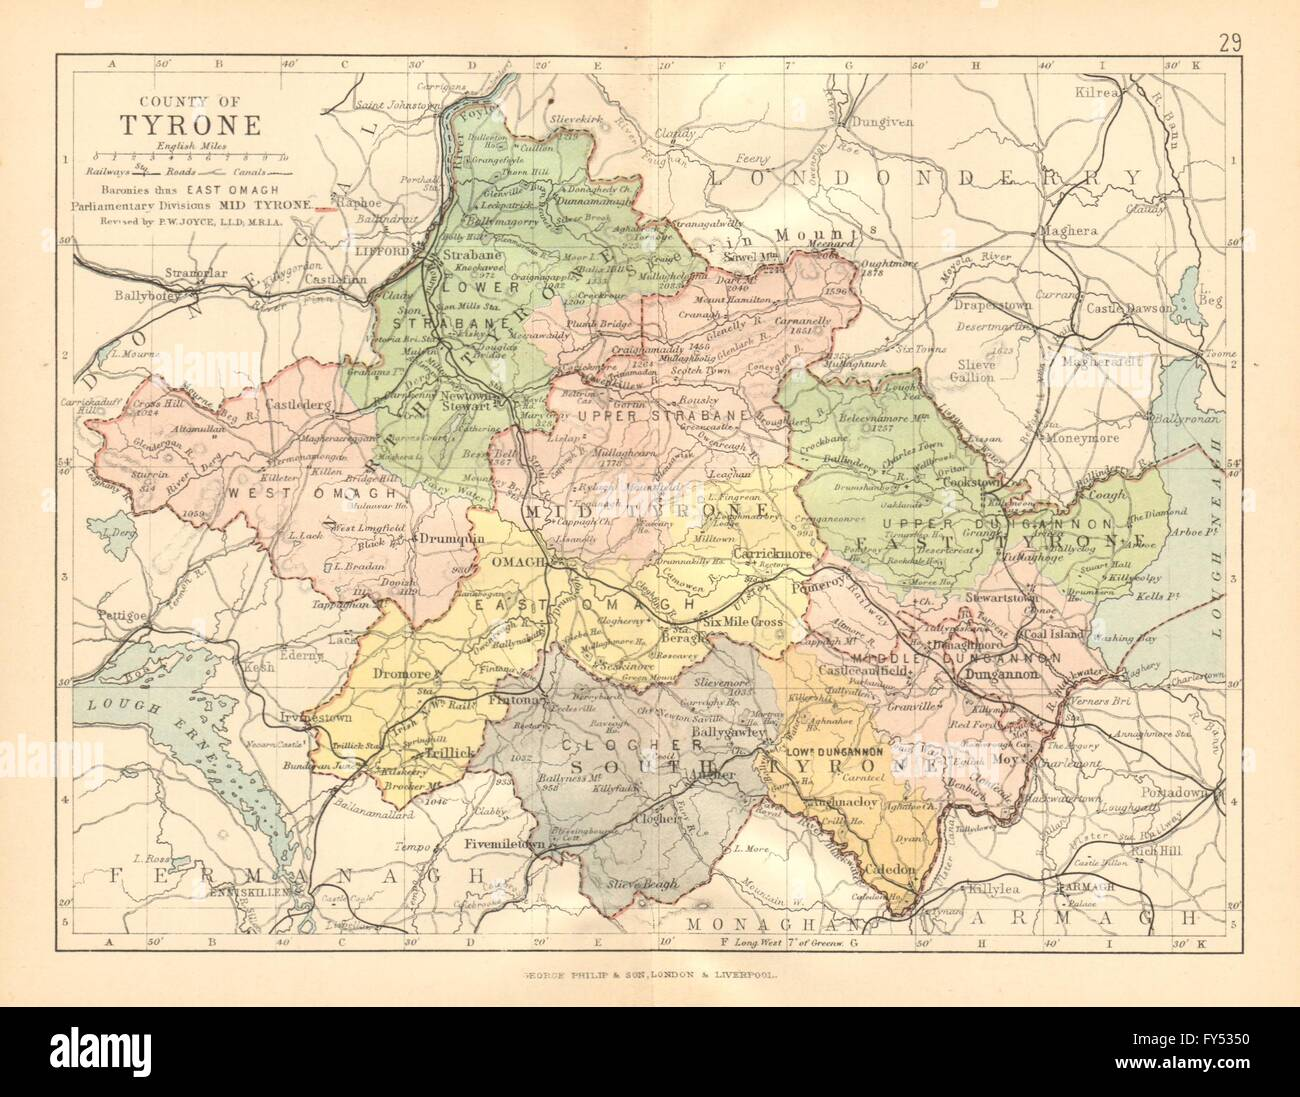 County Tyrone Antique County Map Ulster Northern Ireland Stock Photo Alamy